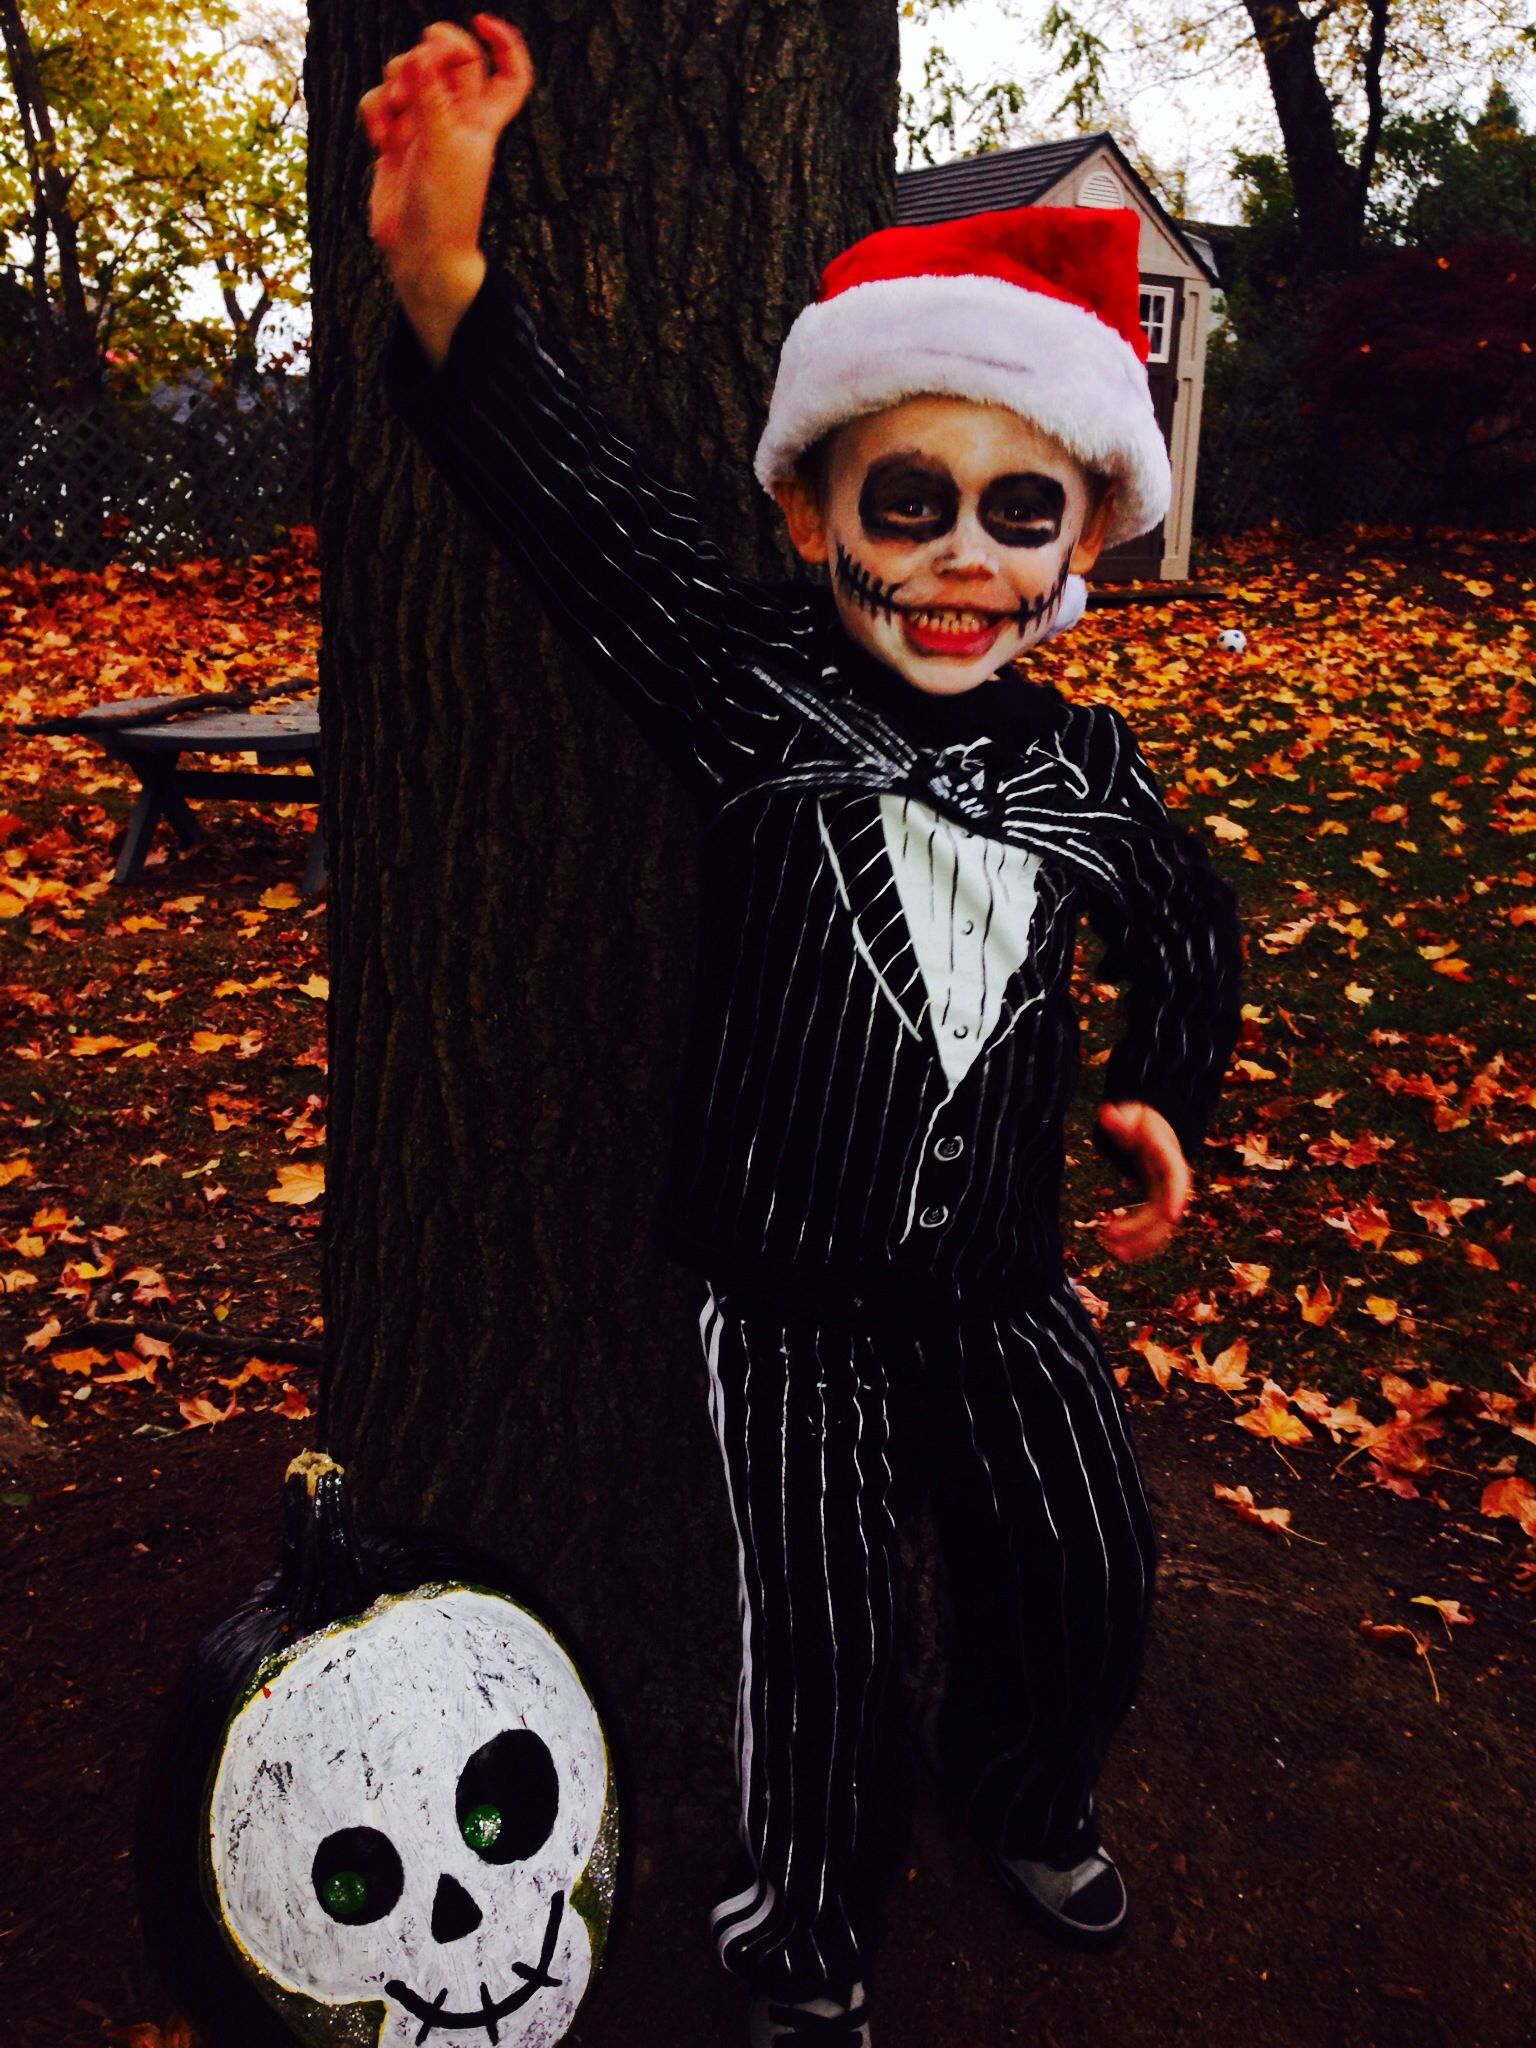 Toddler jack skellington costume! Buy a tuxedo shirt and